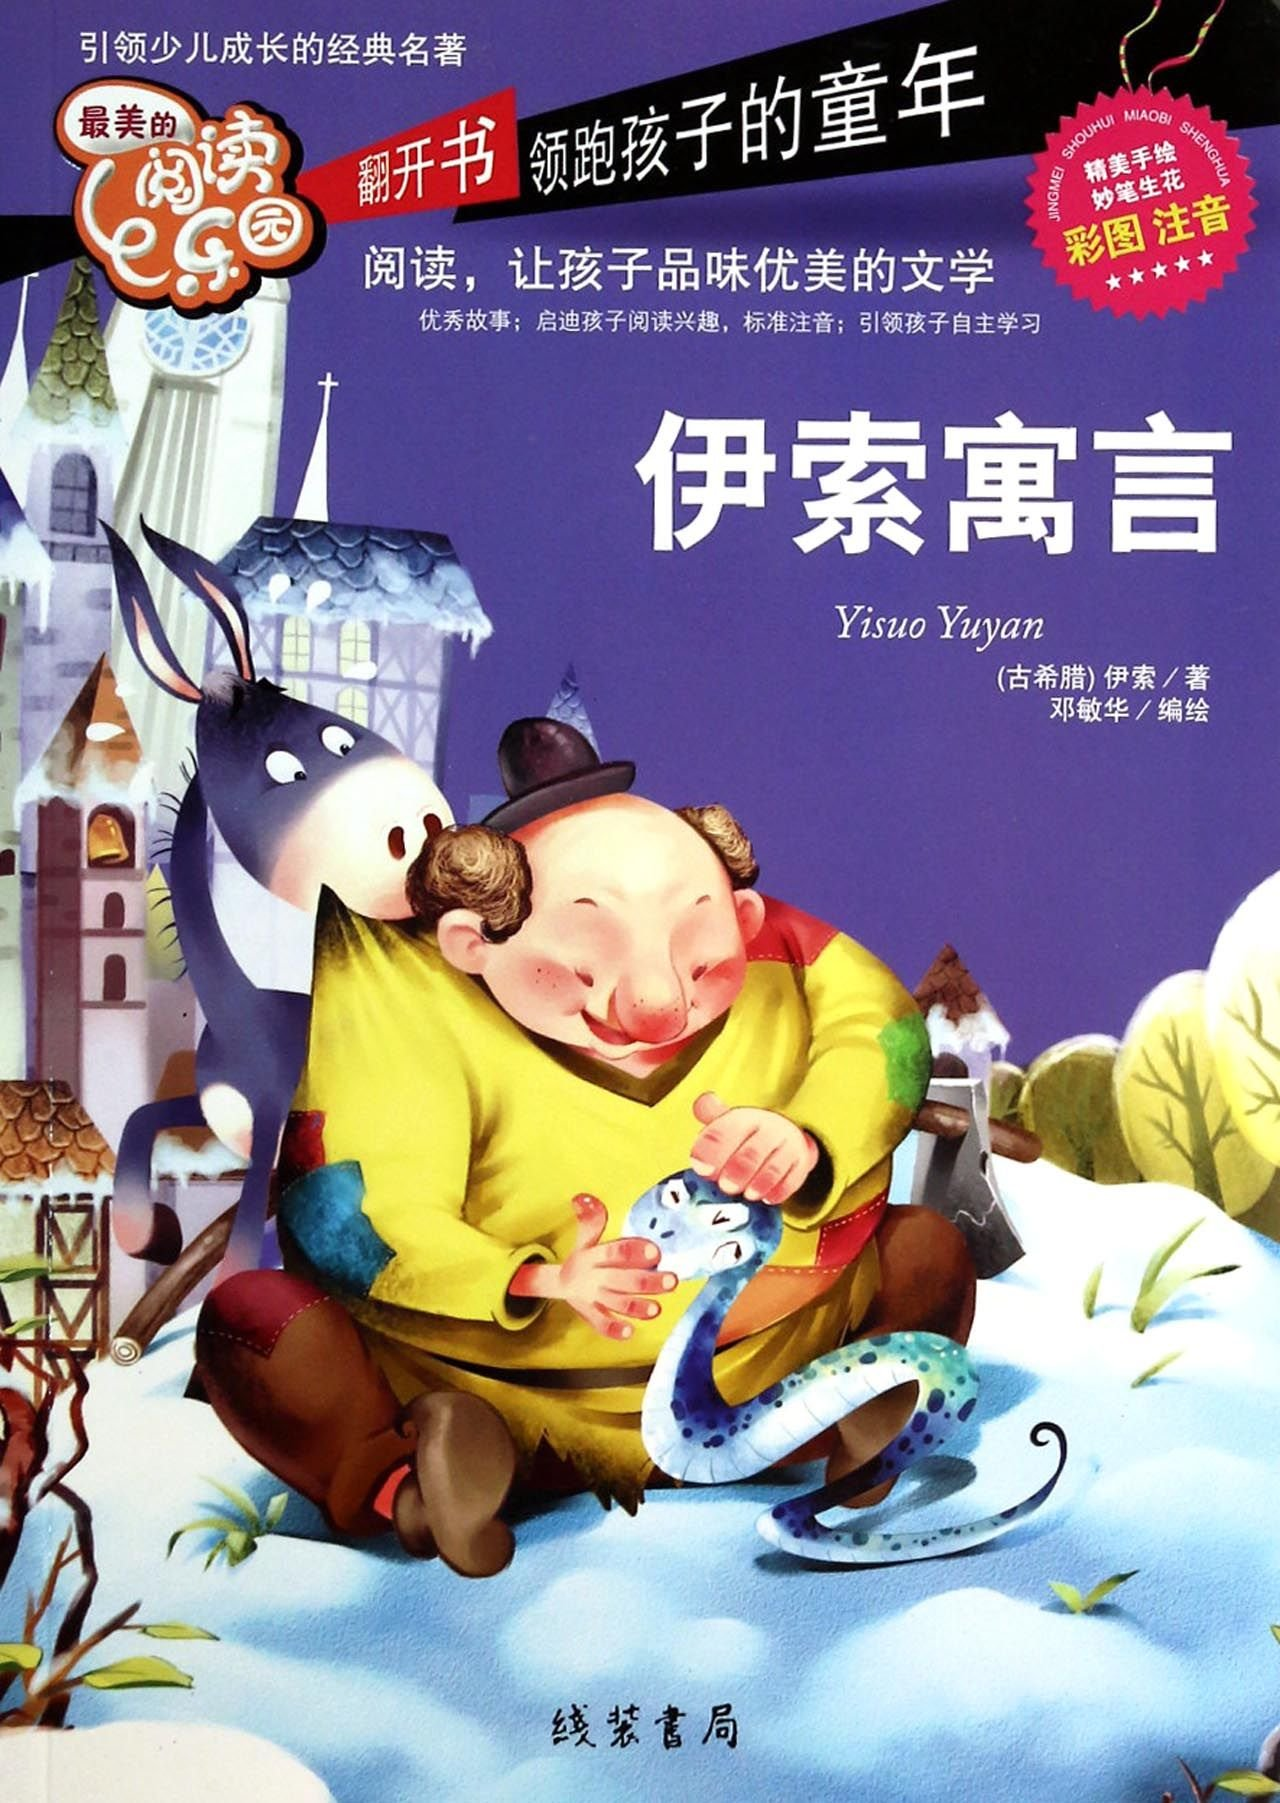 Download Read the most beautiful parks: Aesop's Fables (color phonetic)(Chinese Edition) ebook